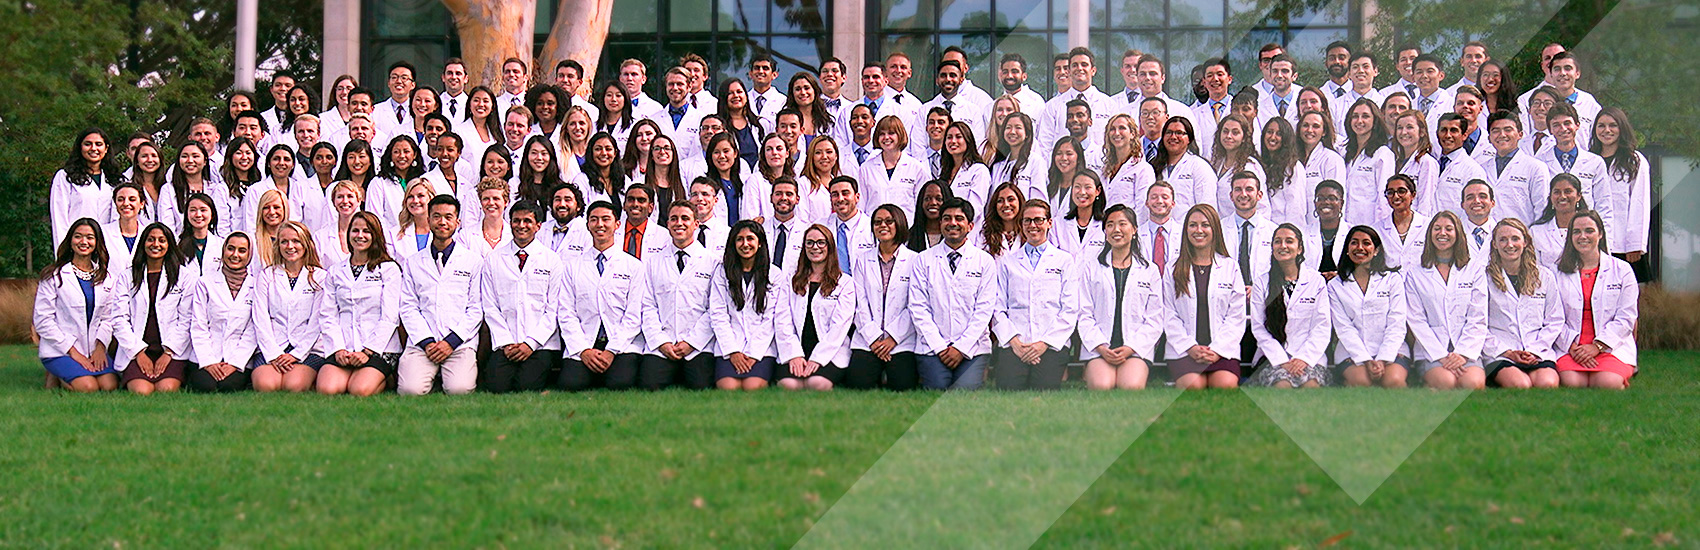 Incoming school of medicine students at white coat ceremony day